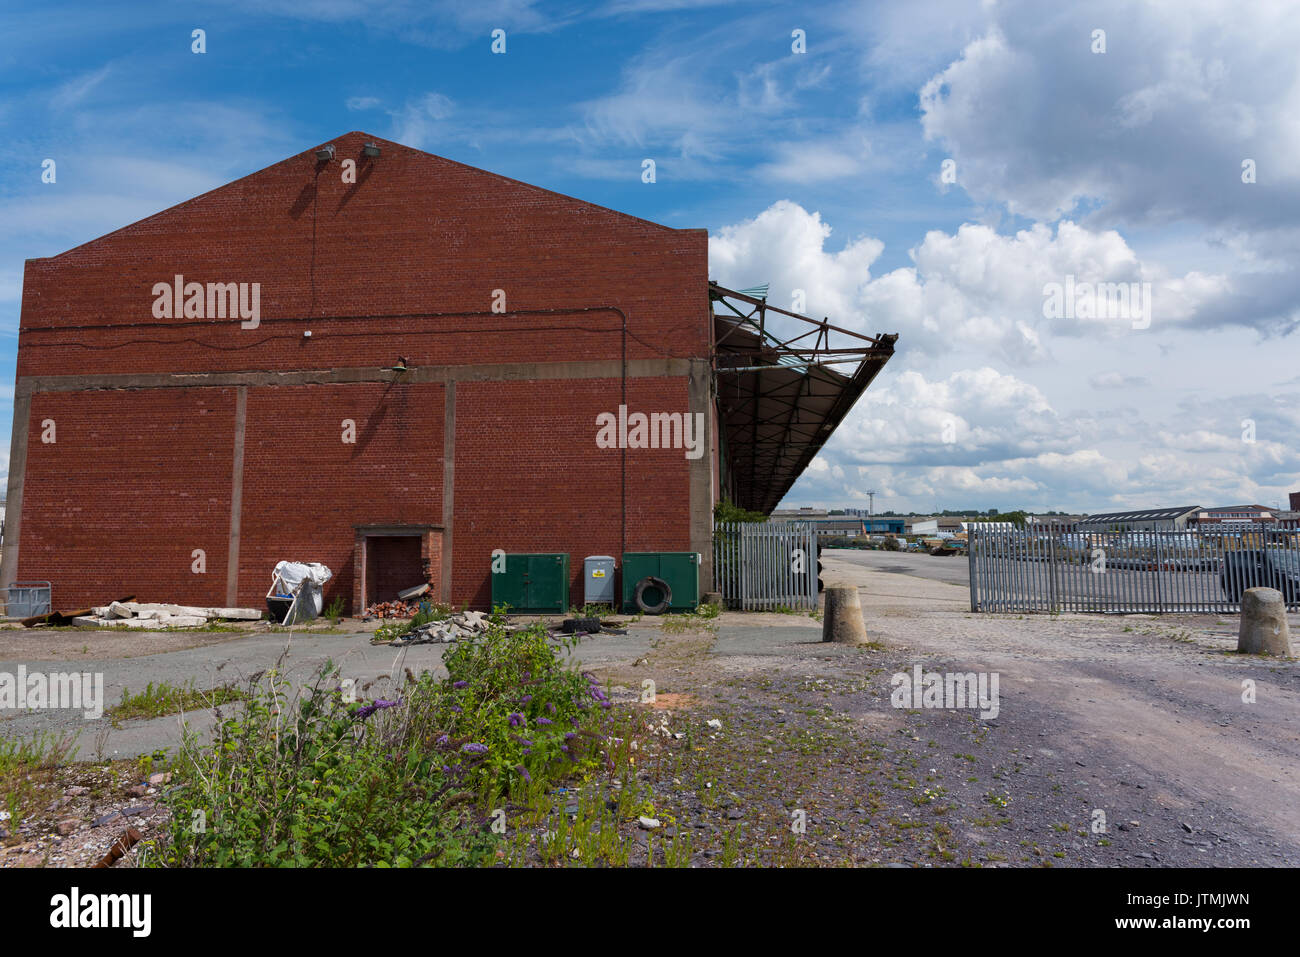 Bramley Moore Dock Liverpool Location Of New Everton Fc Stadium Stock Photo Alamy